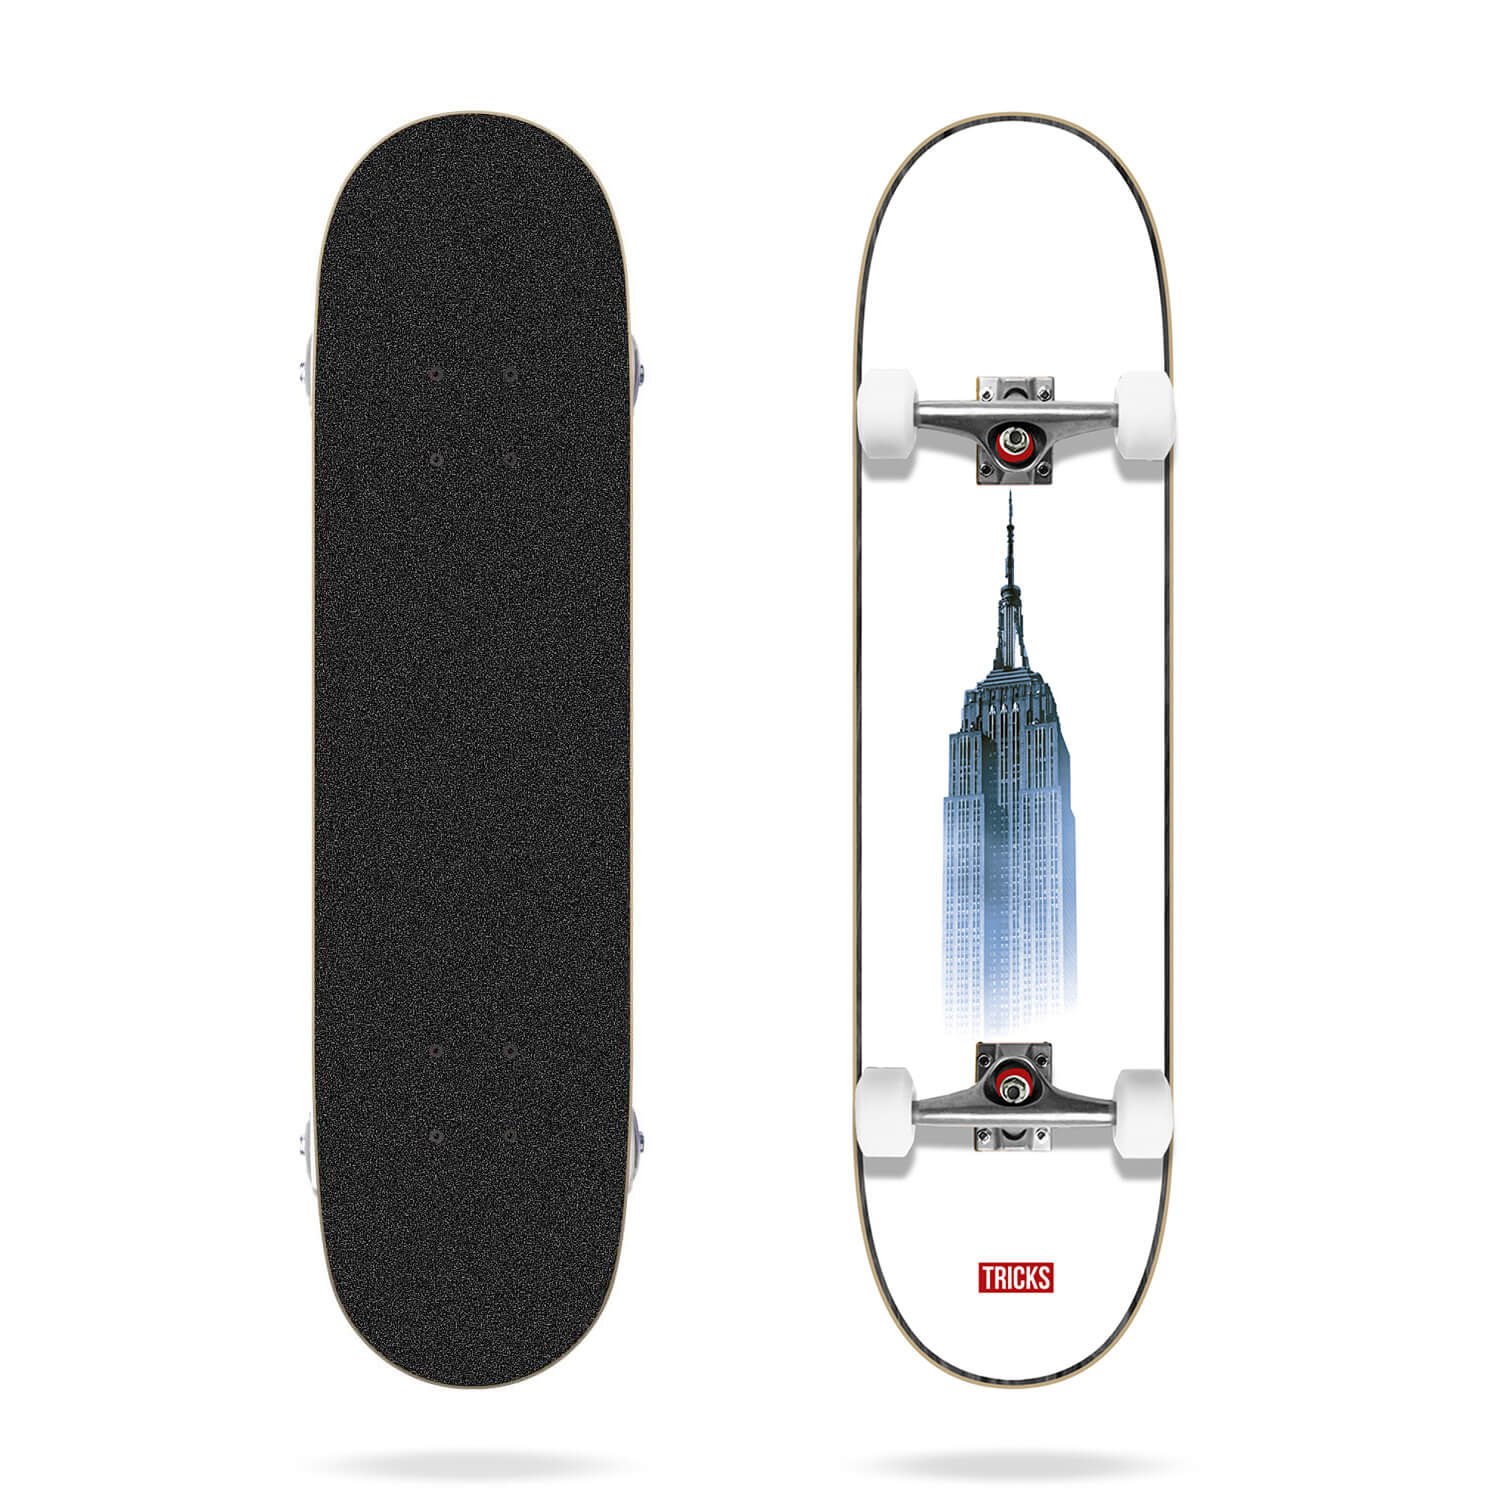 "Tricks Building 7.87"" HC Skateboard Complete"